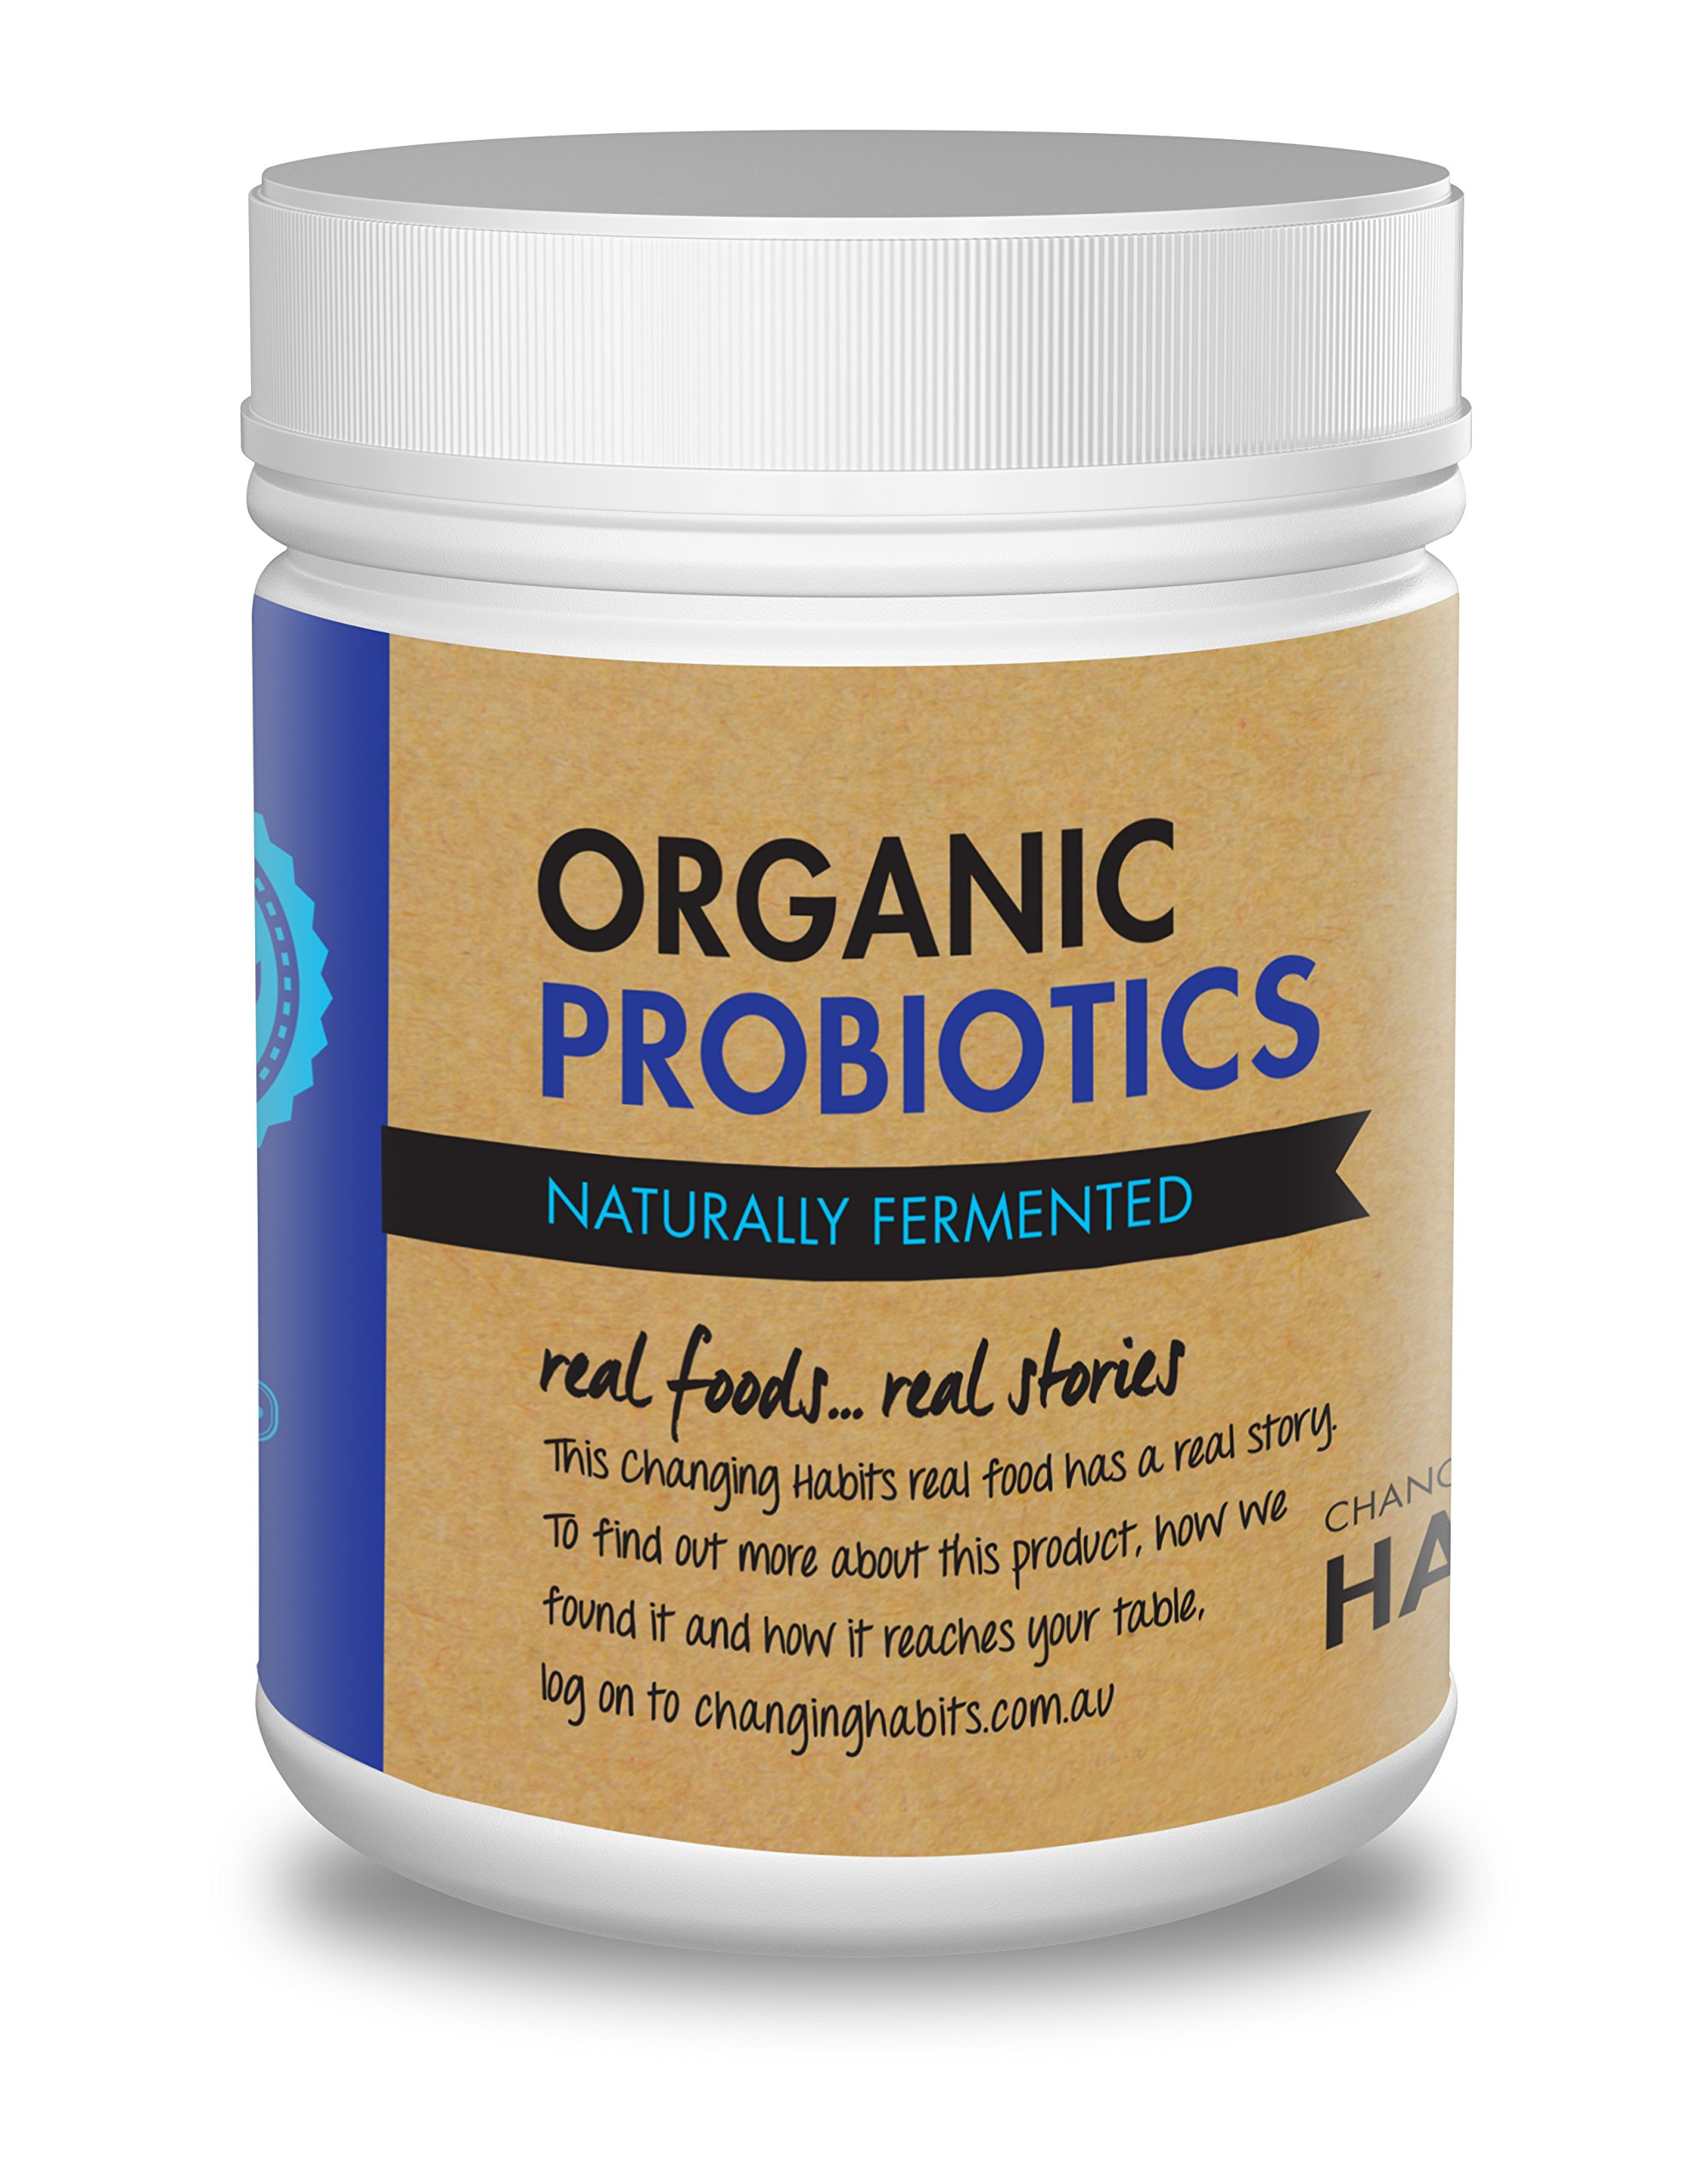 Organic Probiotic Powder With Prebiotic Fiber. 60+ Servings! Soothing, Great Tasting Wholefood Vegan Probiotics and Prebiotics For Women, Men and Kids by Changing Habits (Image #1)